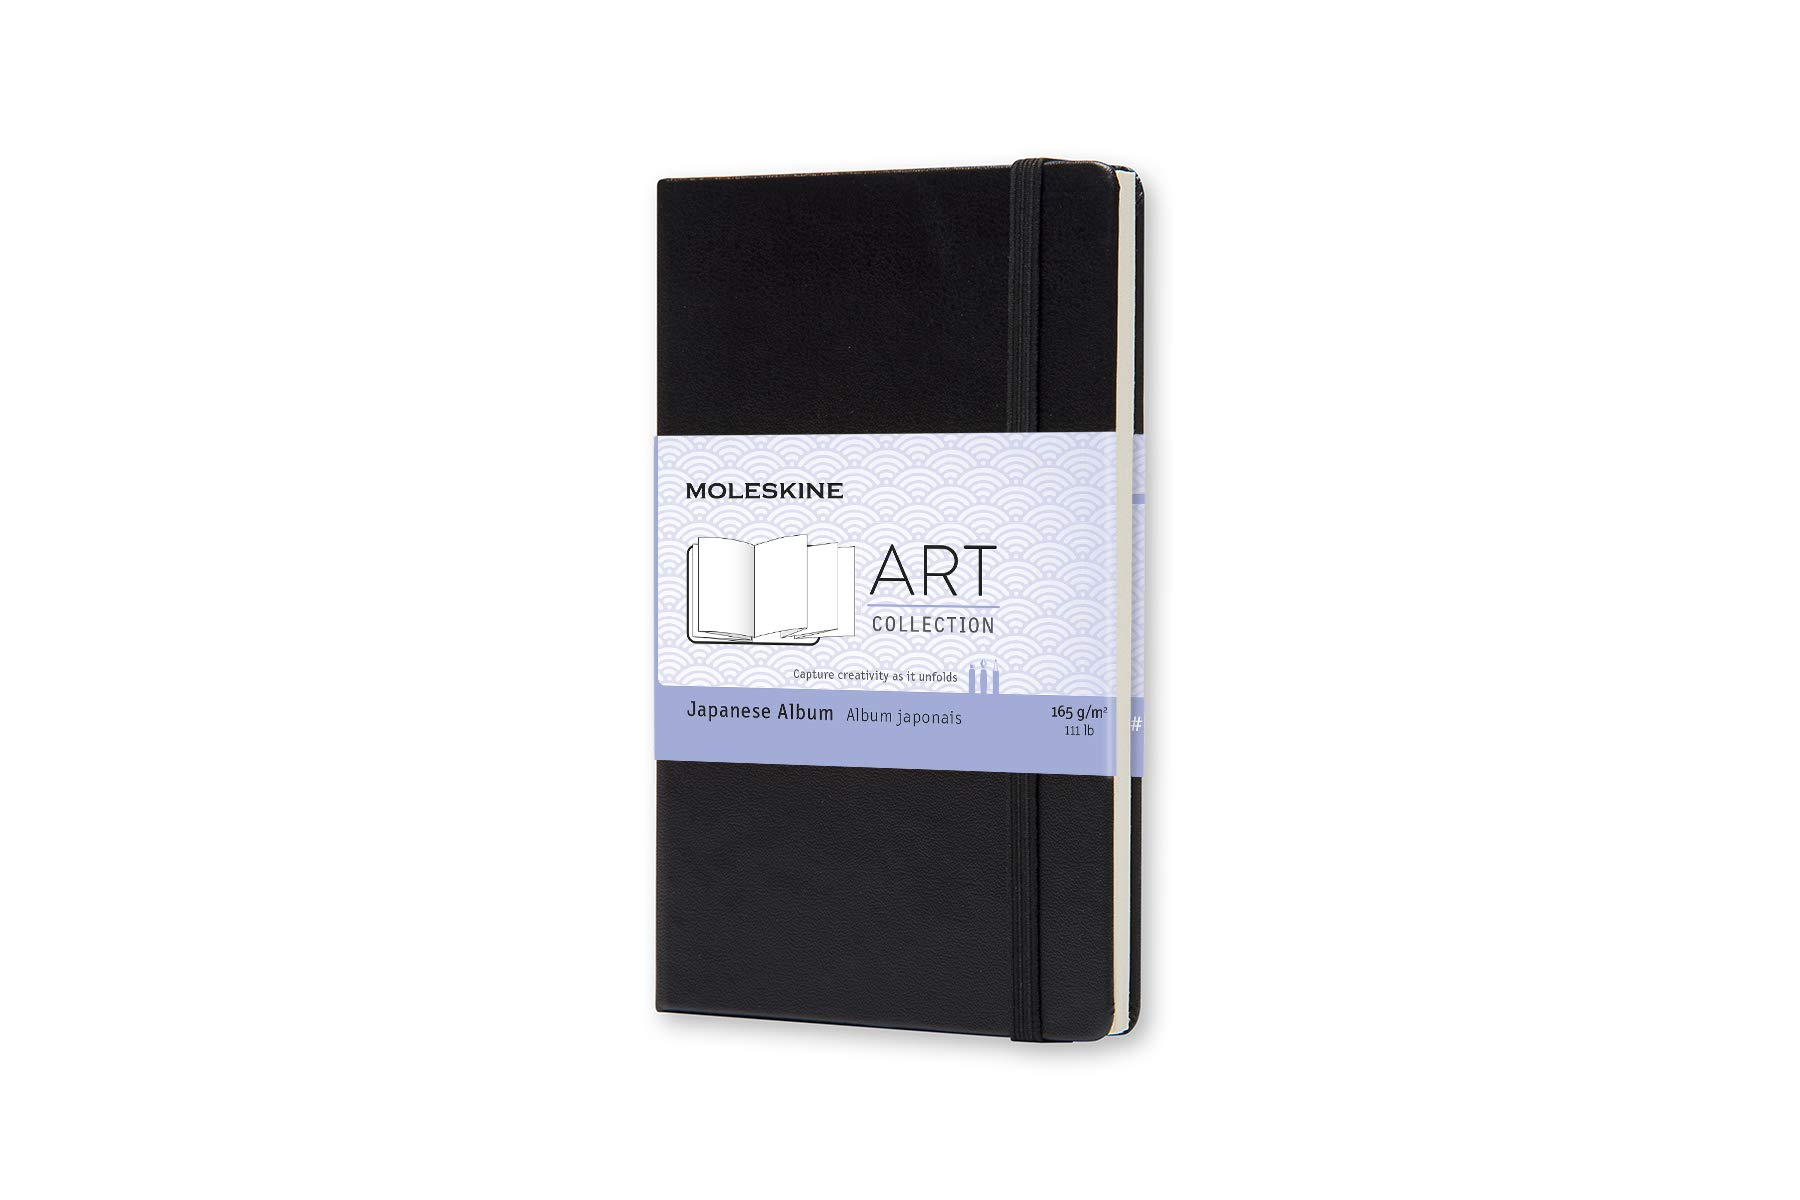 Moleskine Art Plus Hard Cover Japanese Album, Plain, Pocket.